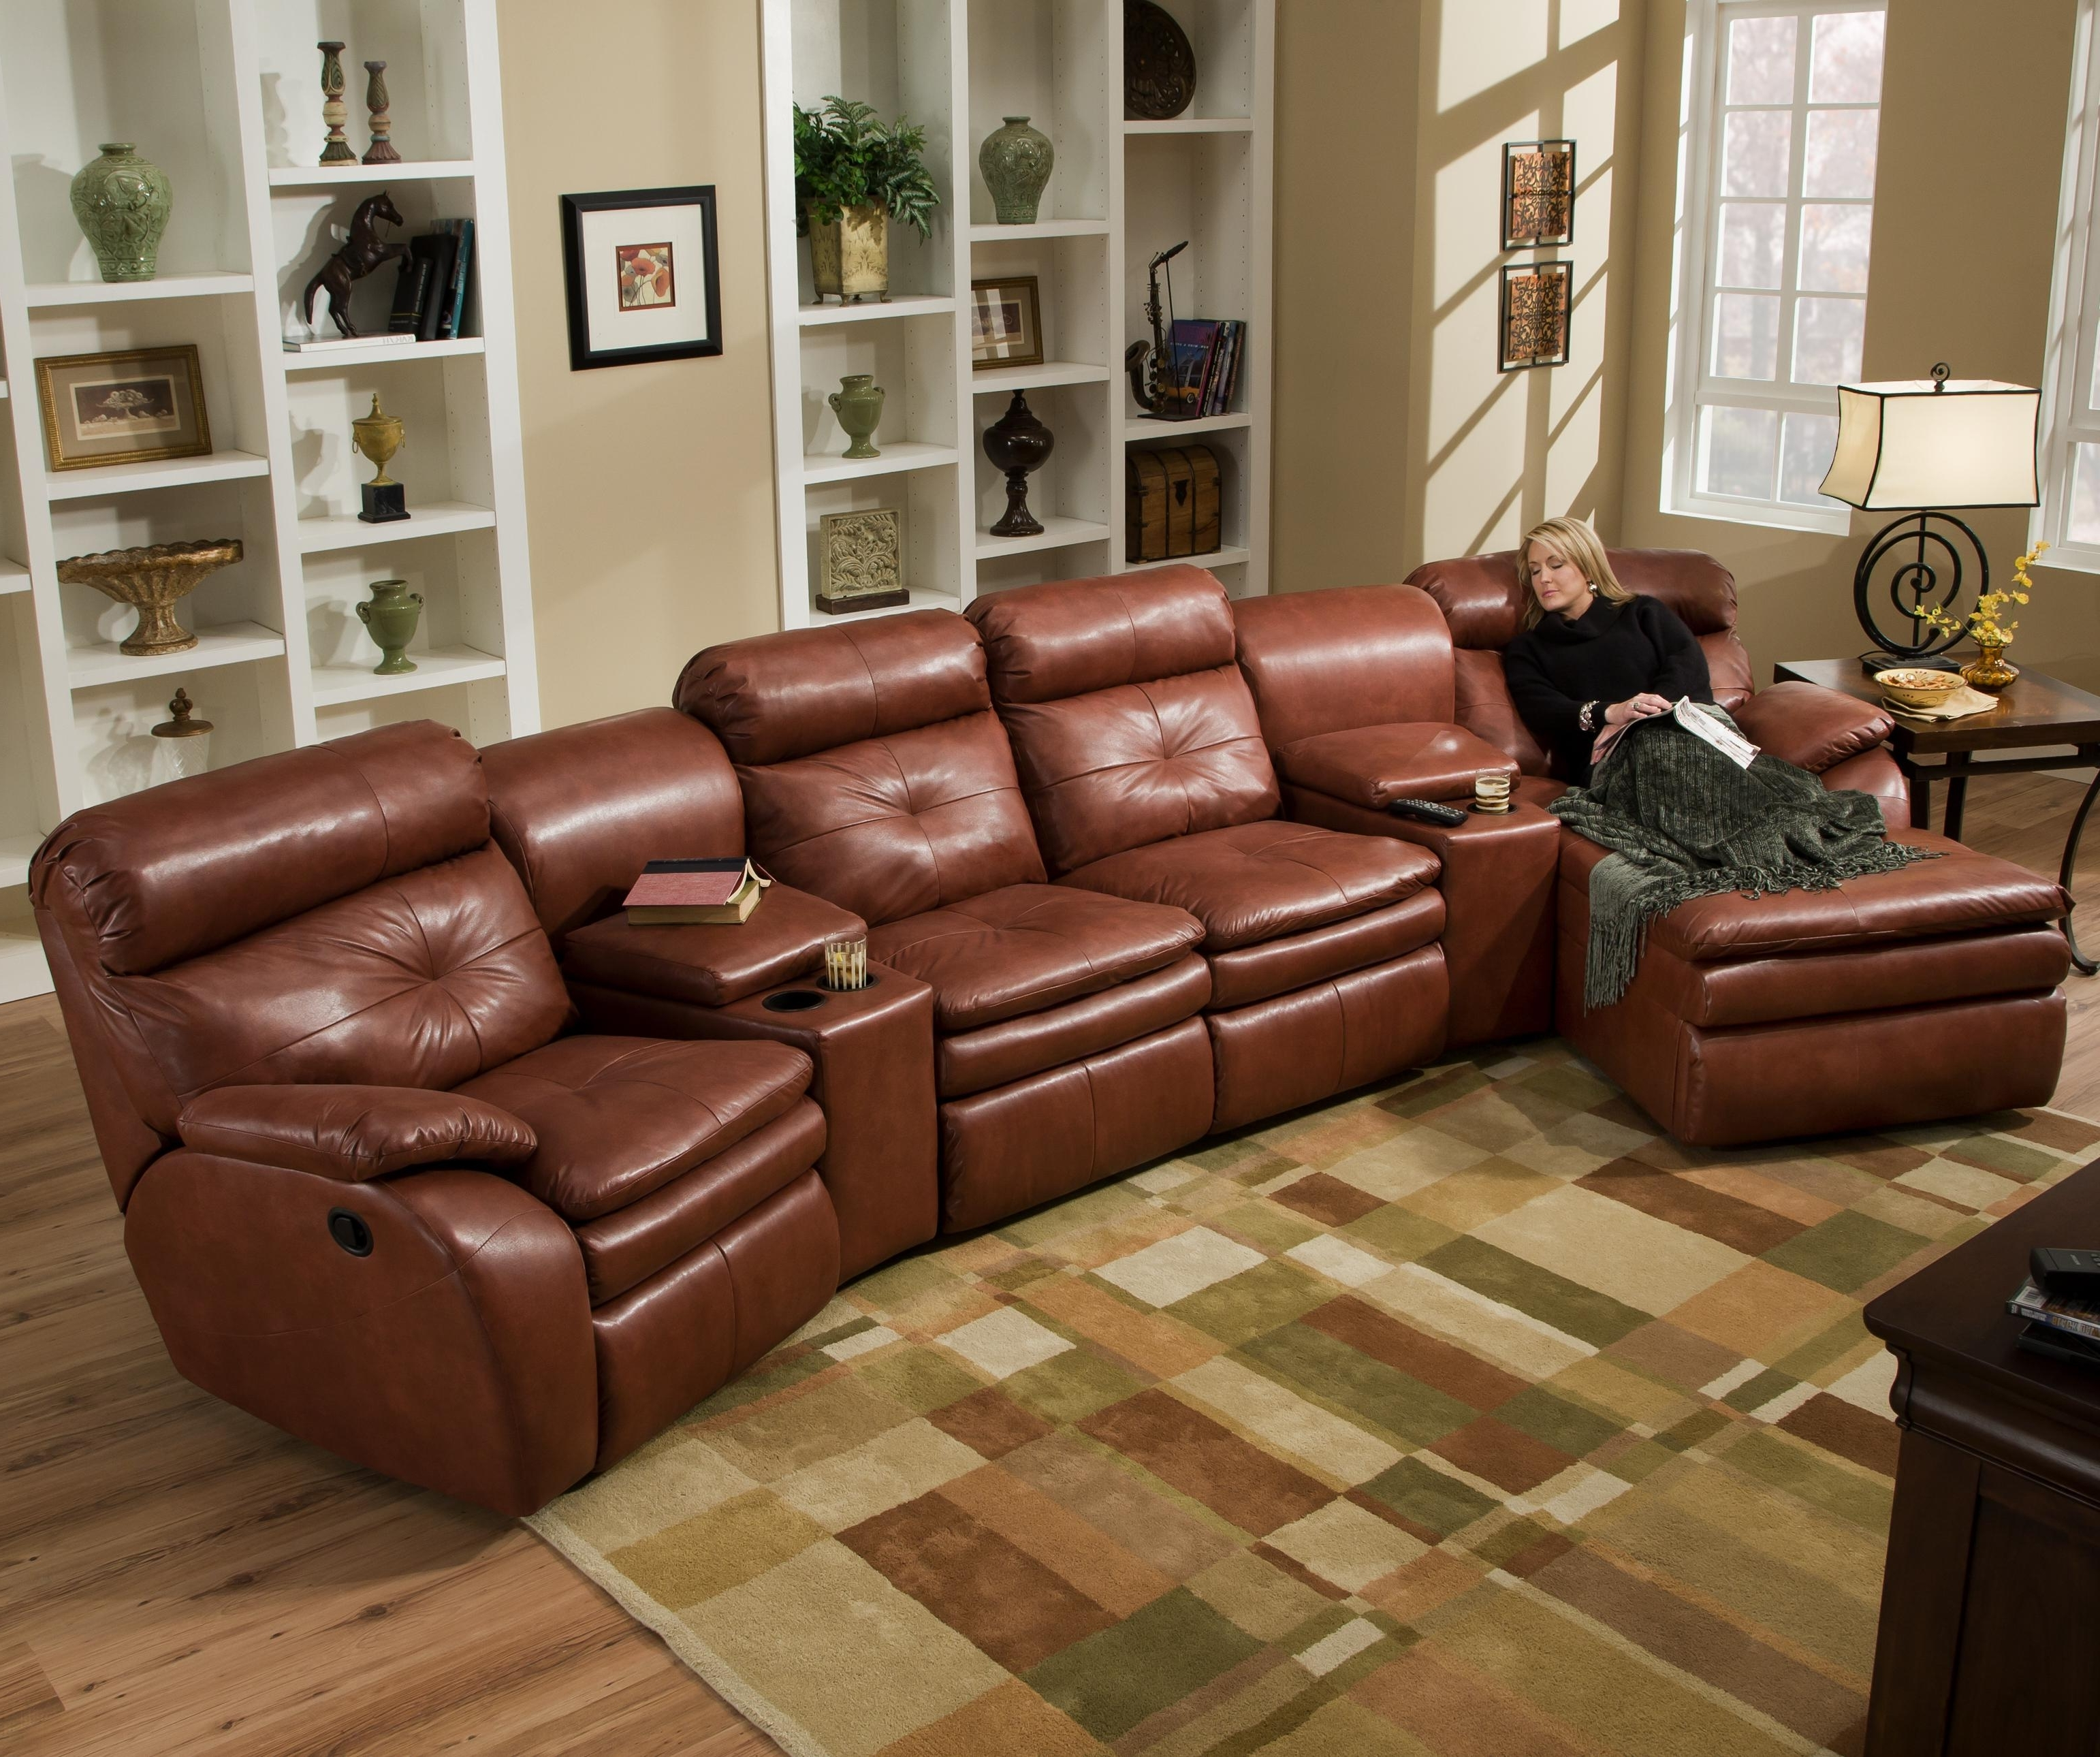 Most Popular Ashley Furniture Sectional Couch Small Sectional Sofa Bed Small Throughout Couches With Chaise And Recliner (View 12 of 15)